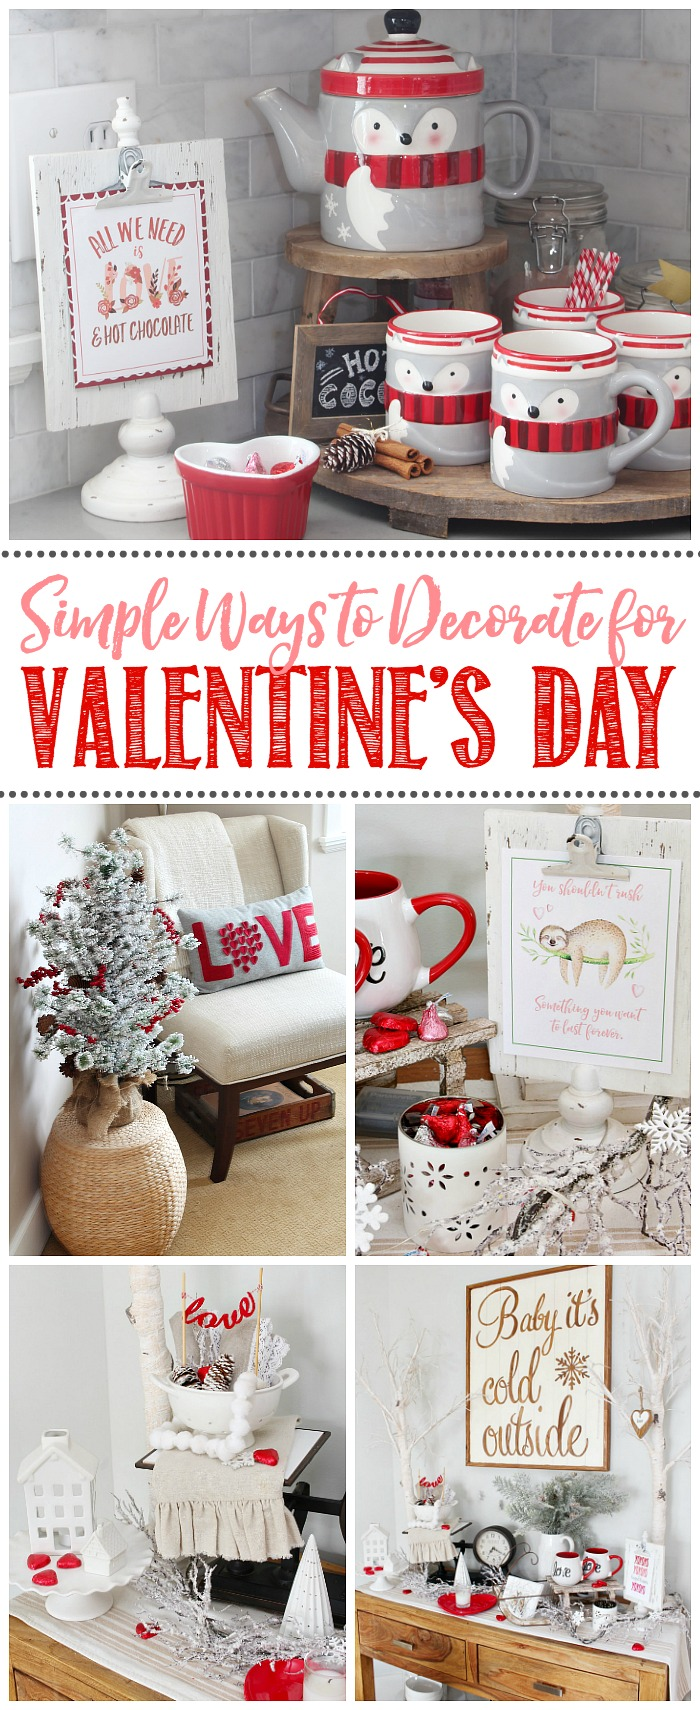 7 Simple Ways to Decorate for Valentine's Day. Inexpensive and pretty Valentine's Day decor that you can do in no time!